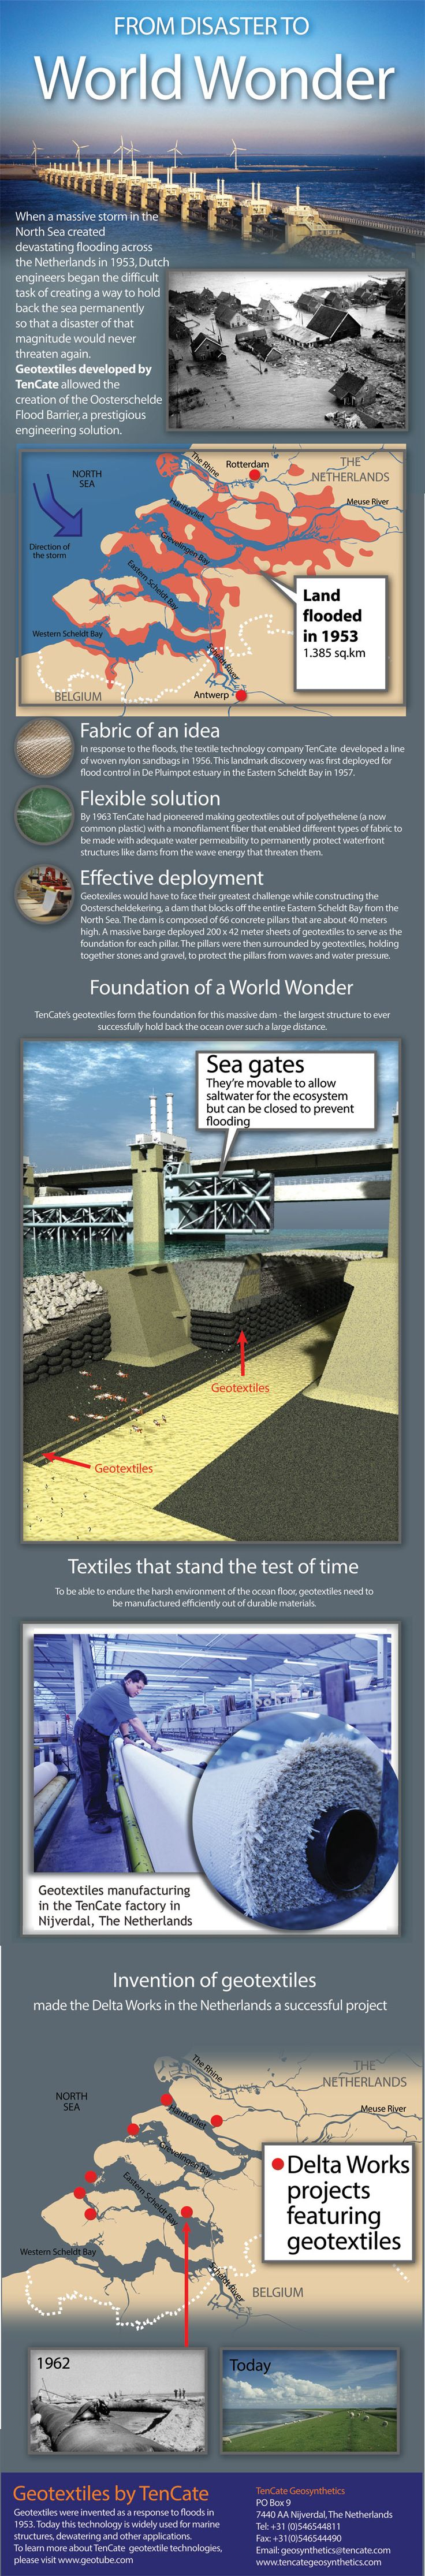 This infographic shows how geotextiles was used in the Deltaworks in the Netherlands. Geotextiles is a super strong synthetic fabric invented nearly 60 years ago by Tenkate